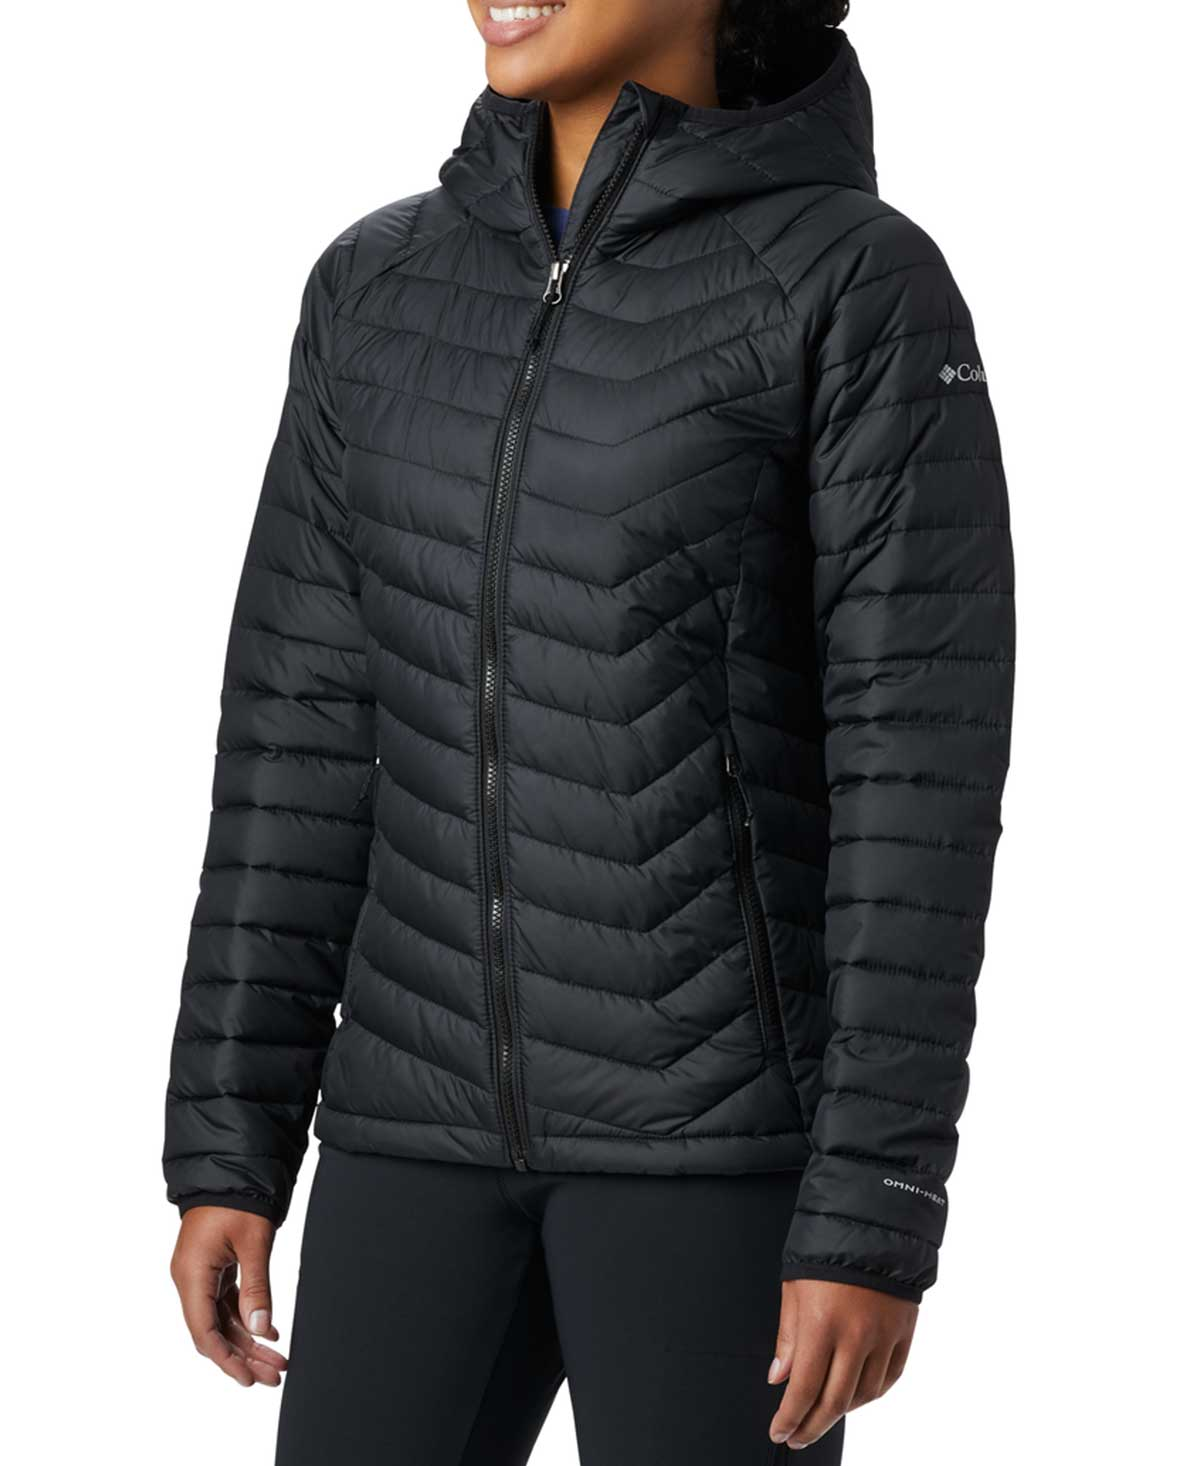 Columbia Women's Powder Lite Hooded Insulated Jacket